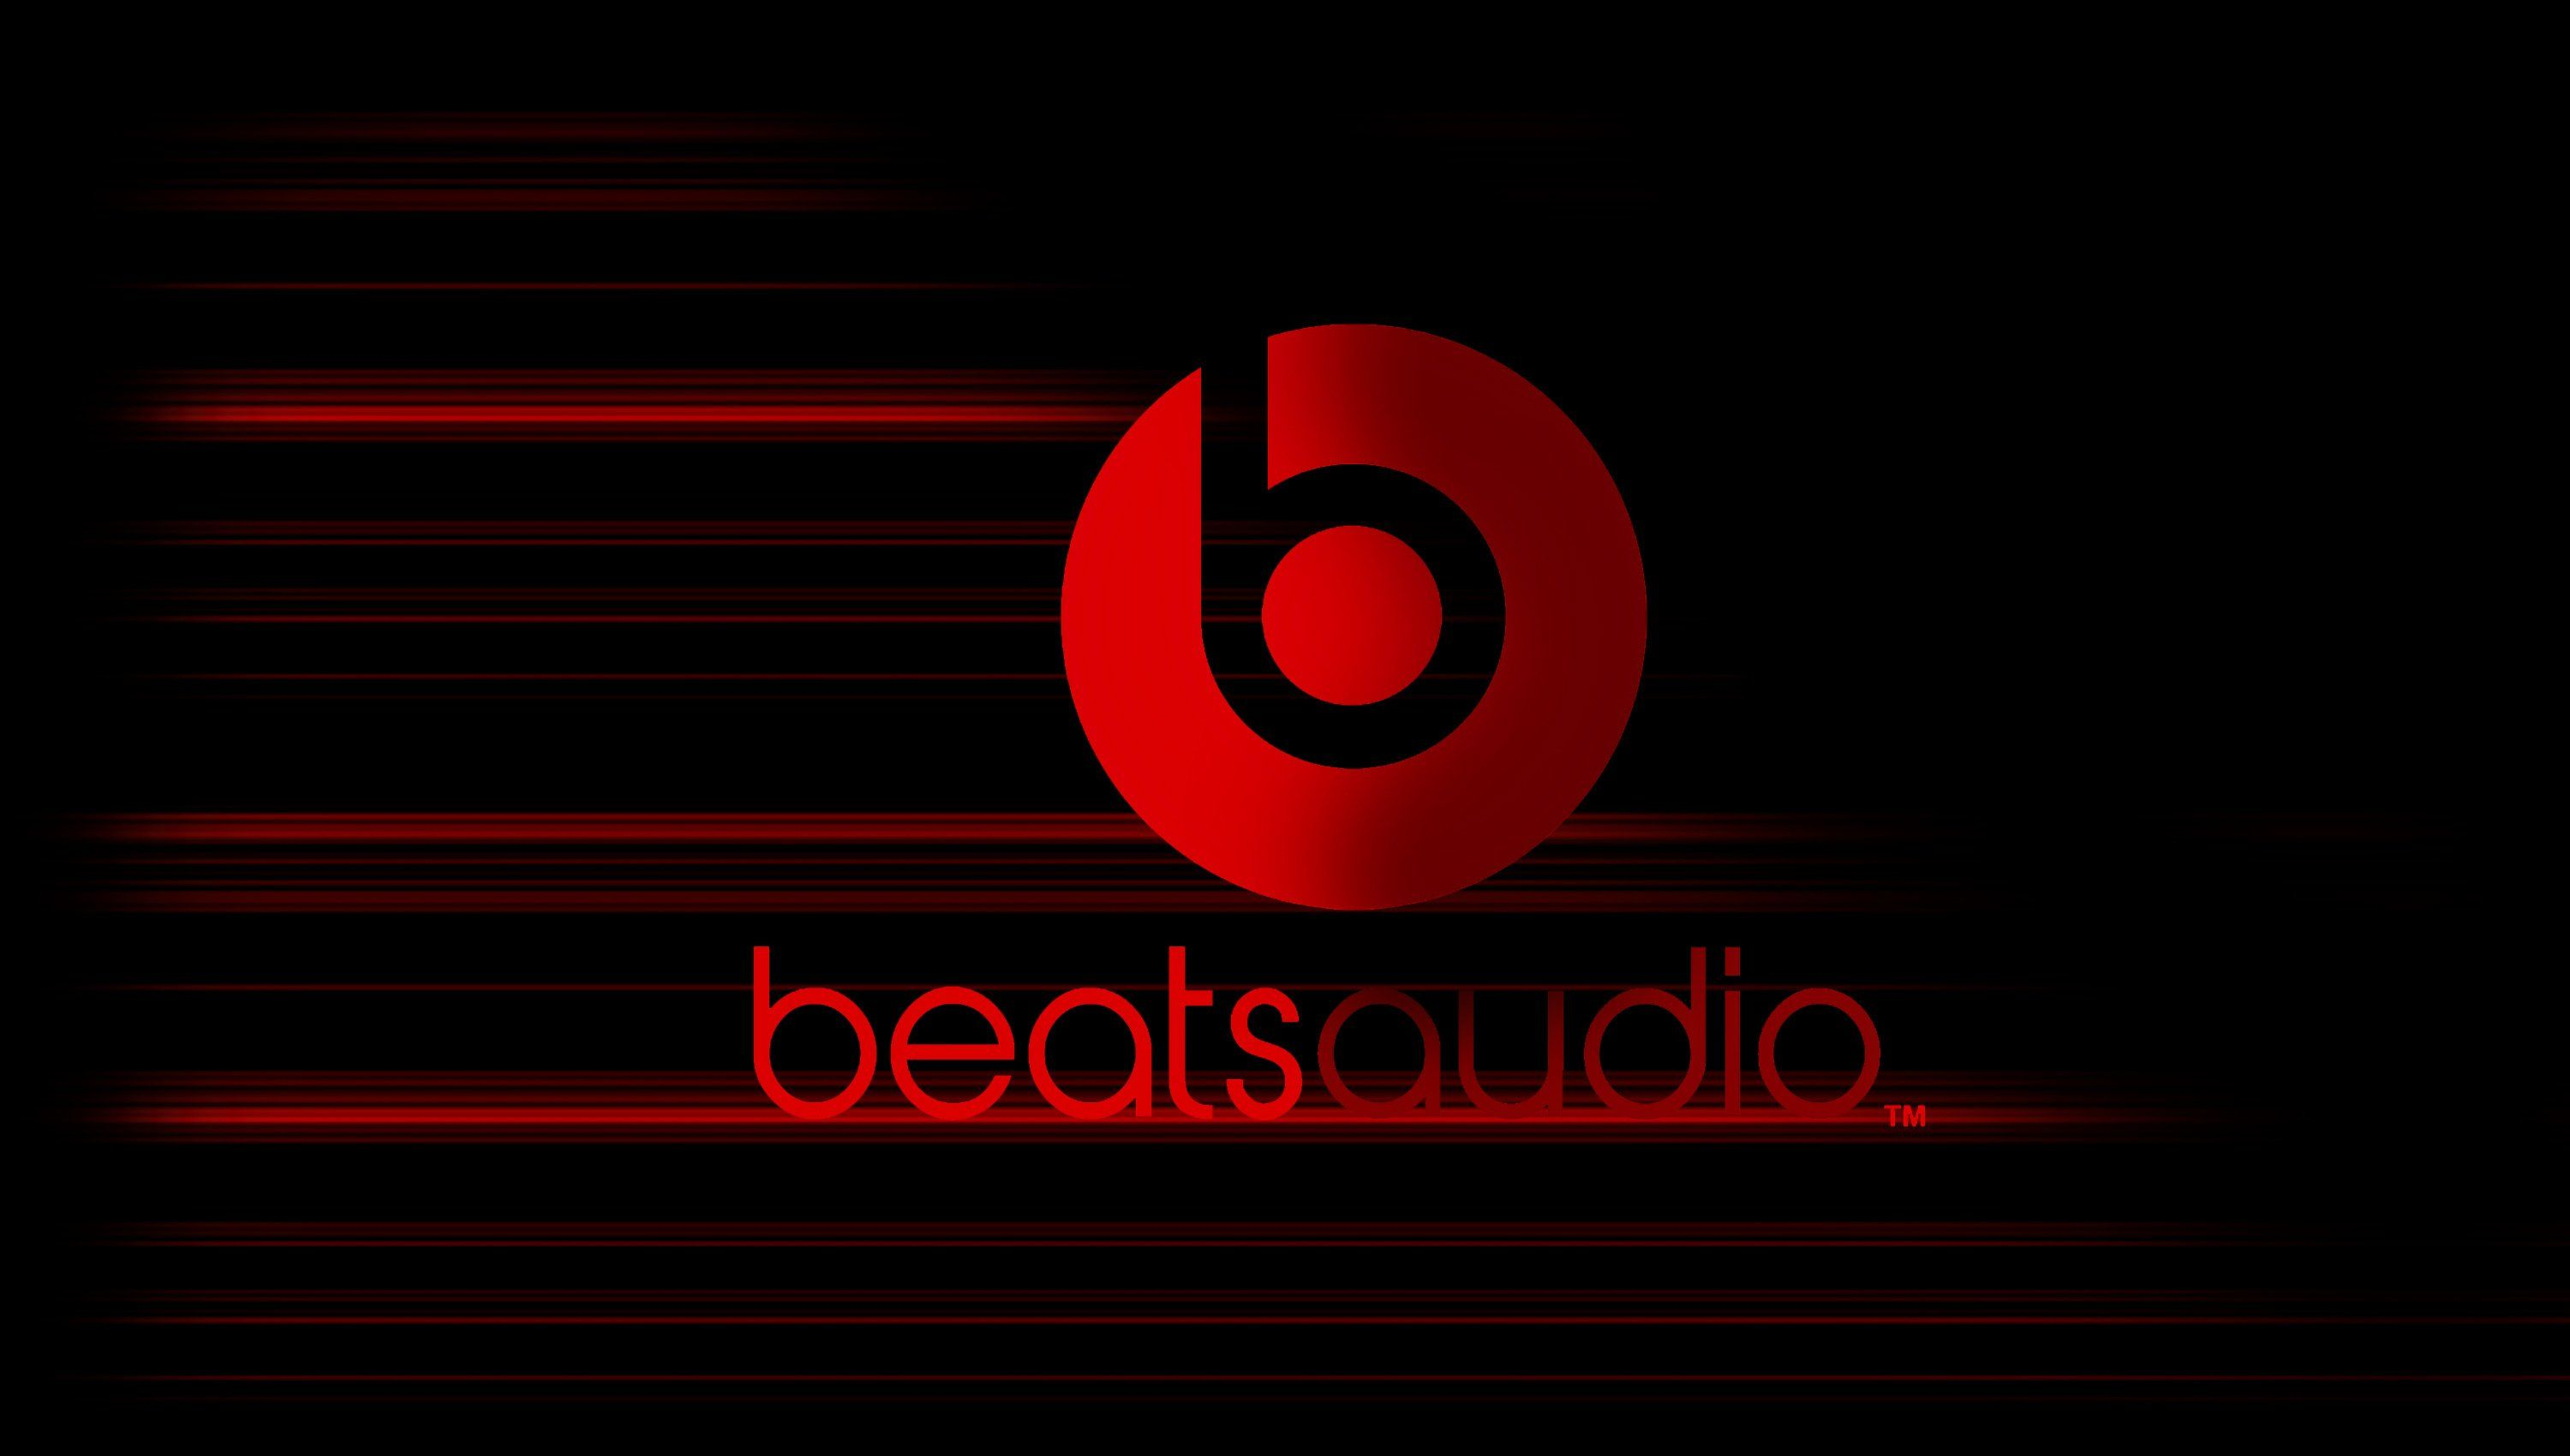 Beats Audio Wallpaper 17 3000x1700 768x435